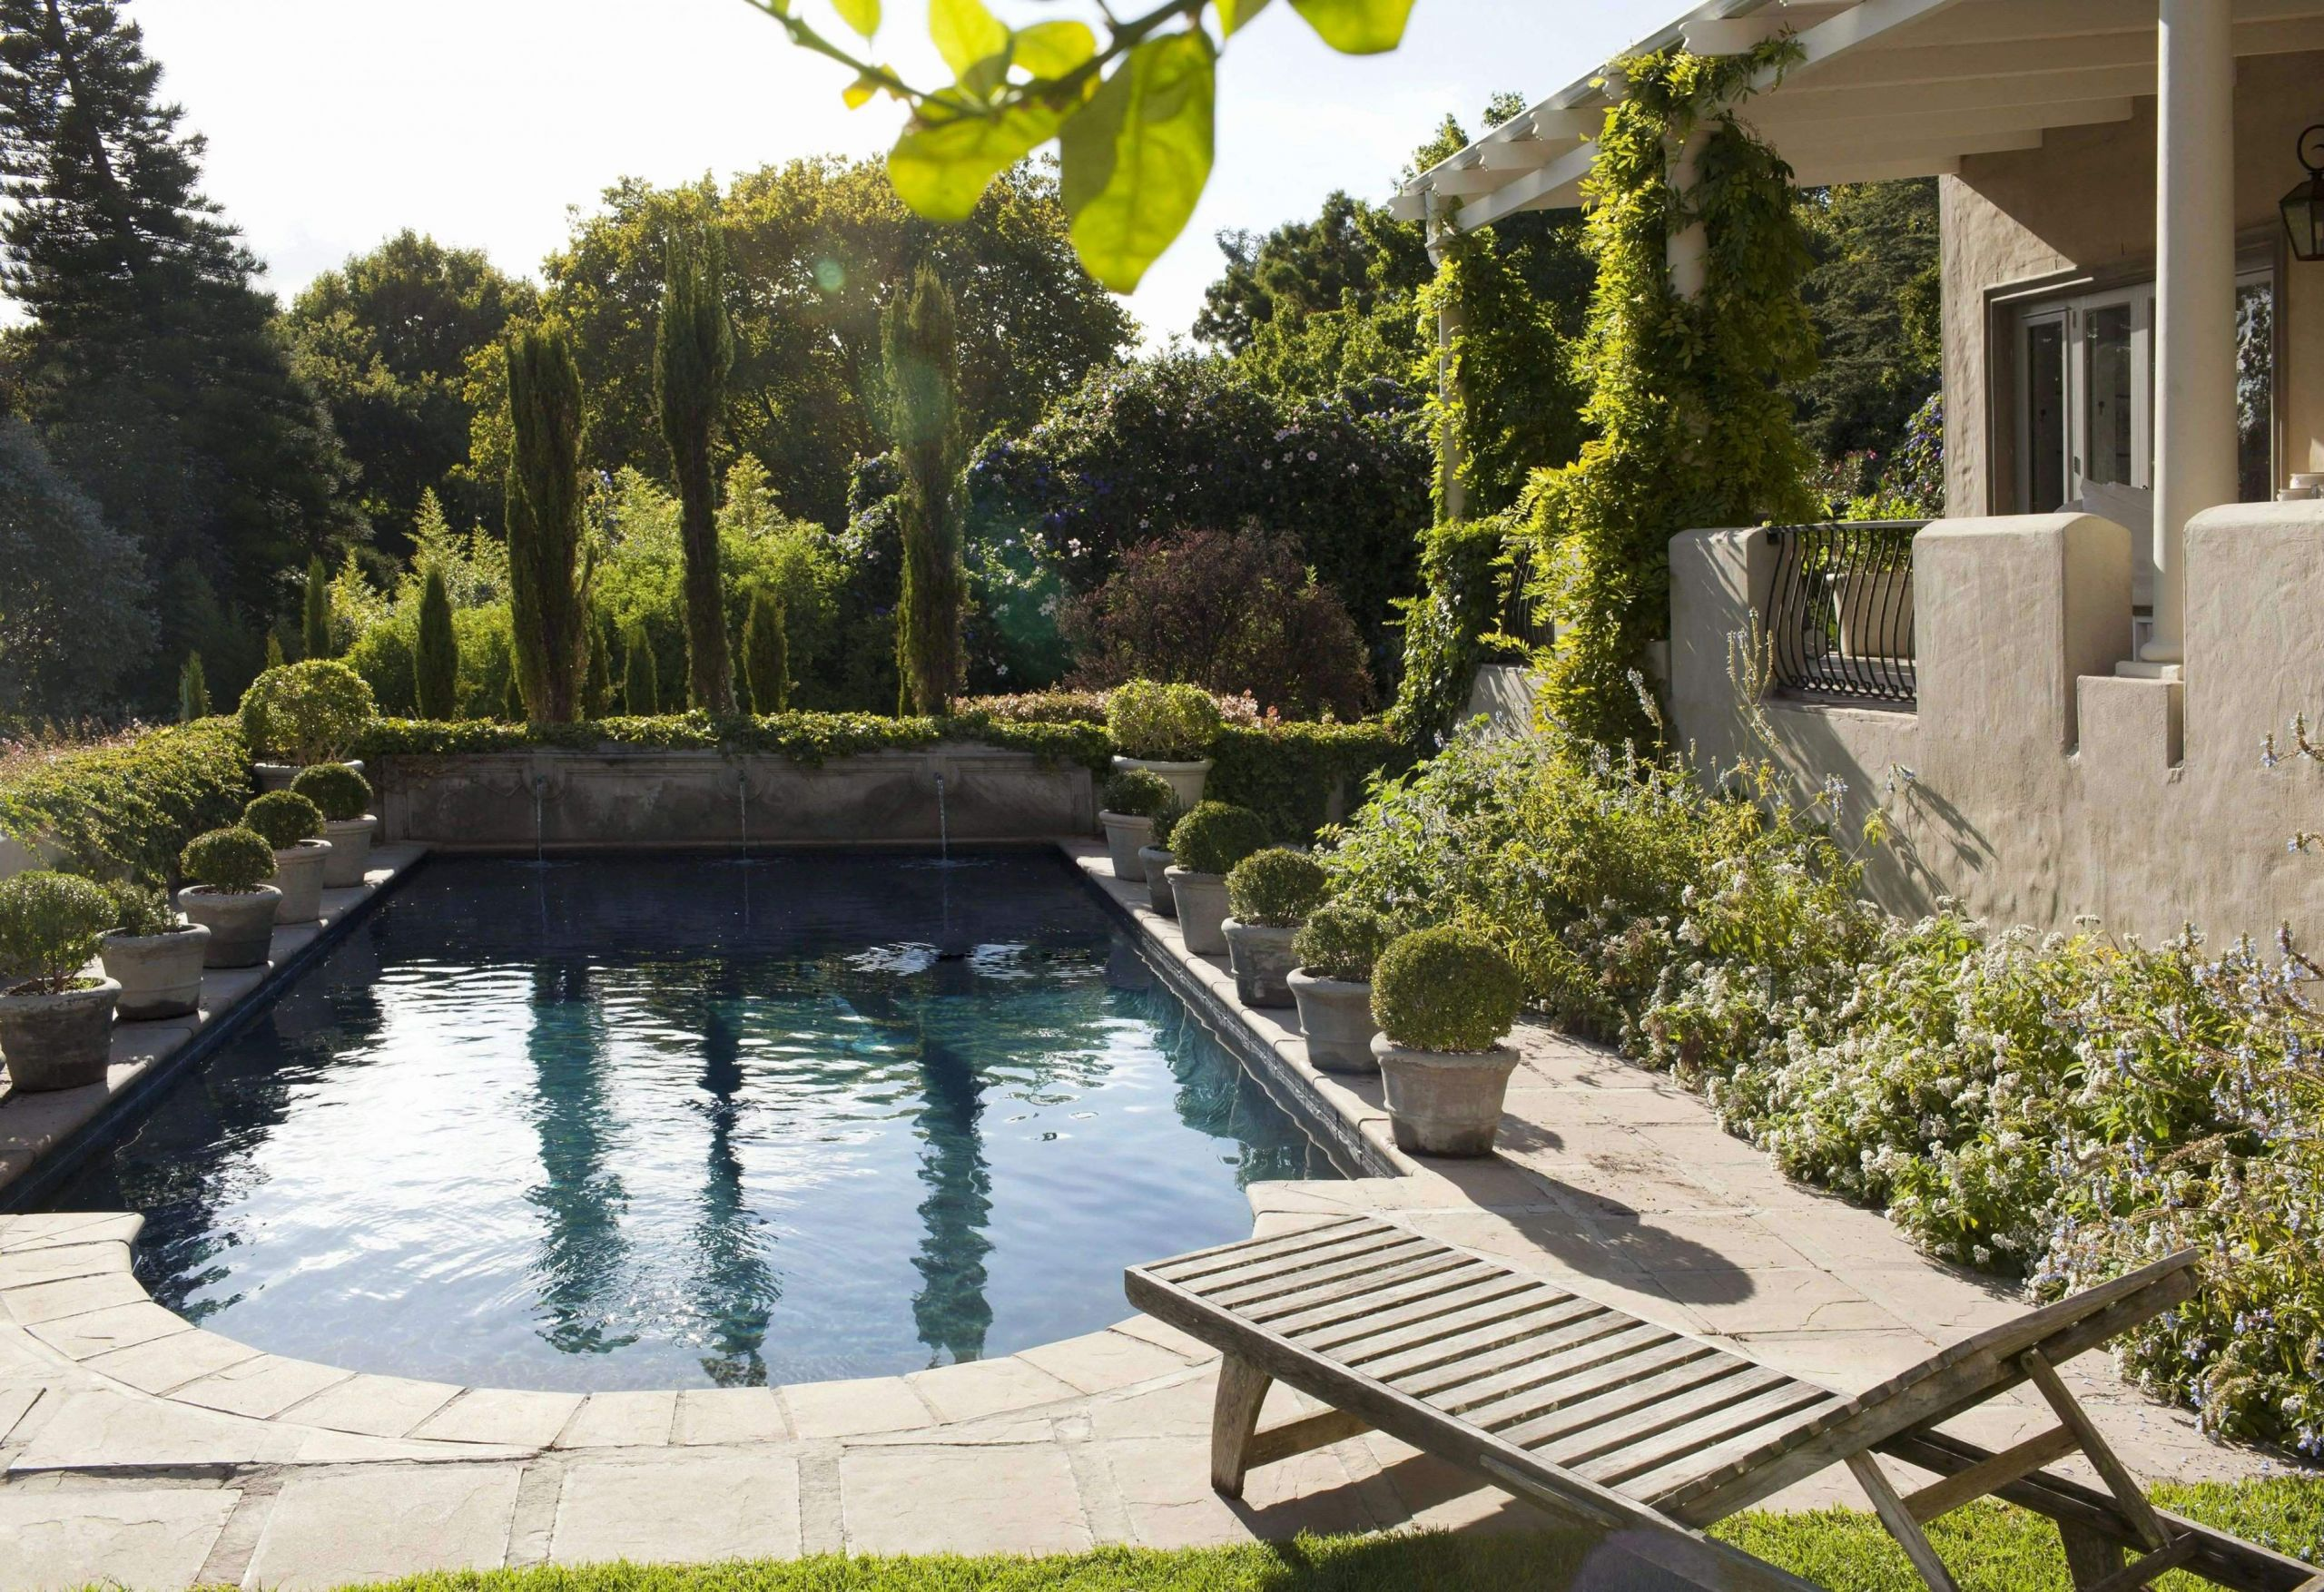 swimming pools schon swimming pools lovely home swimming pool safe traumgarten mit pool traumgarten mit pool